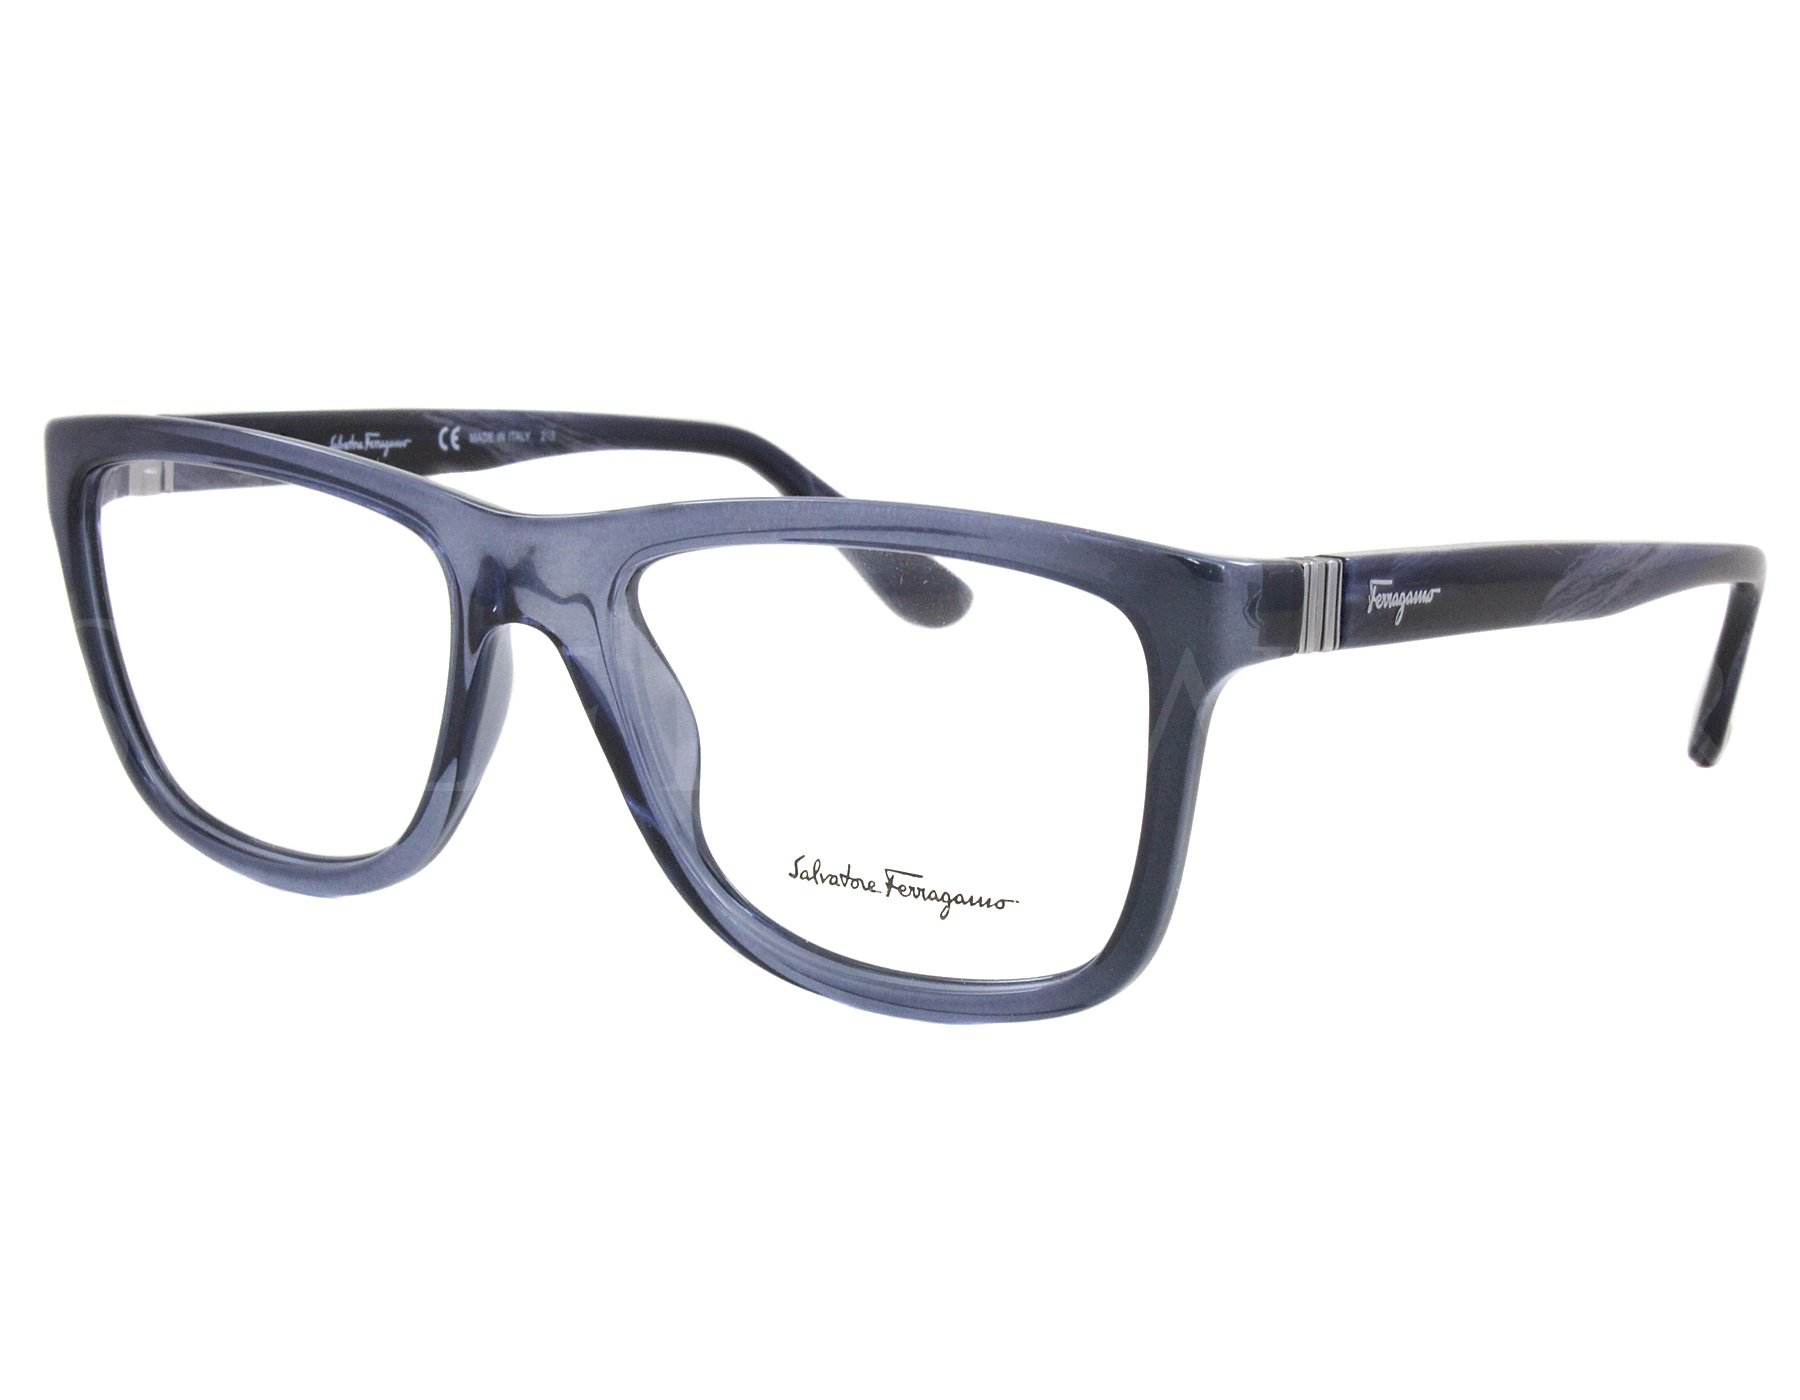 NEW Salvatore Ferragamo SF2694 424 54mm Blue Optical Eyeglasses ...